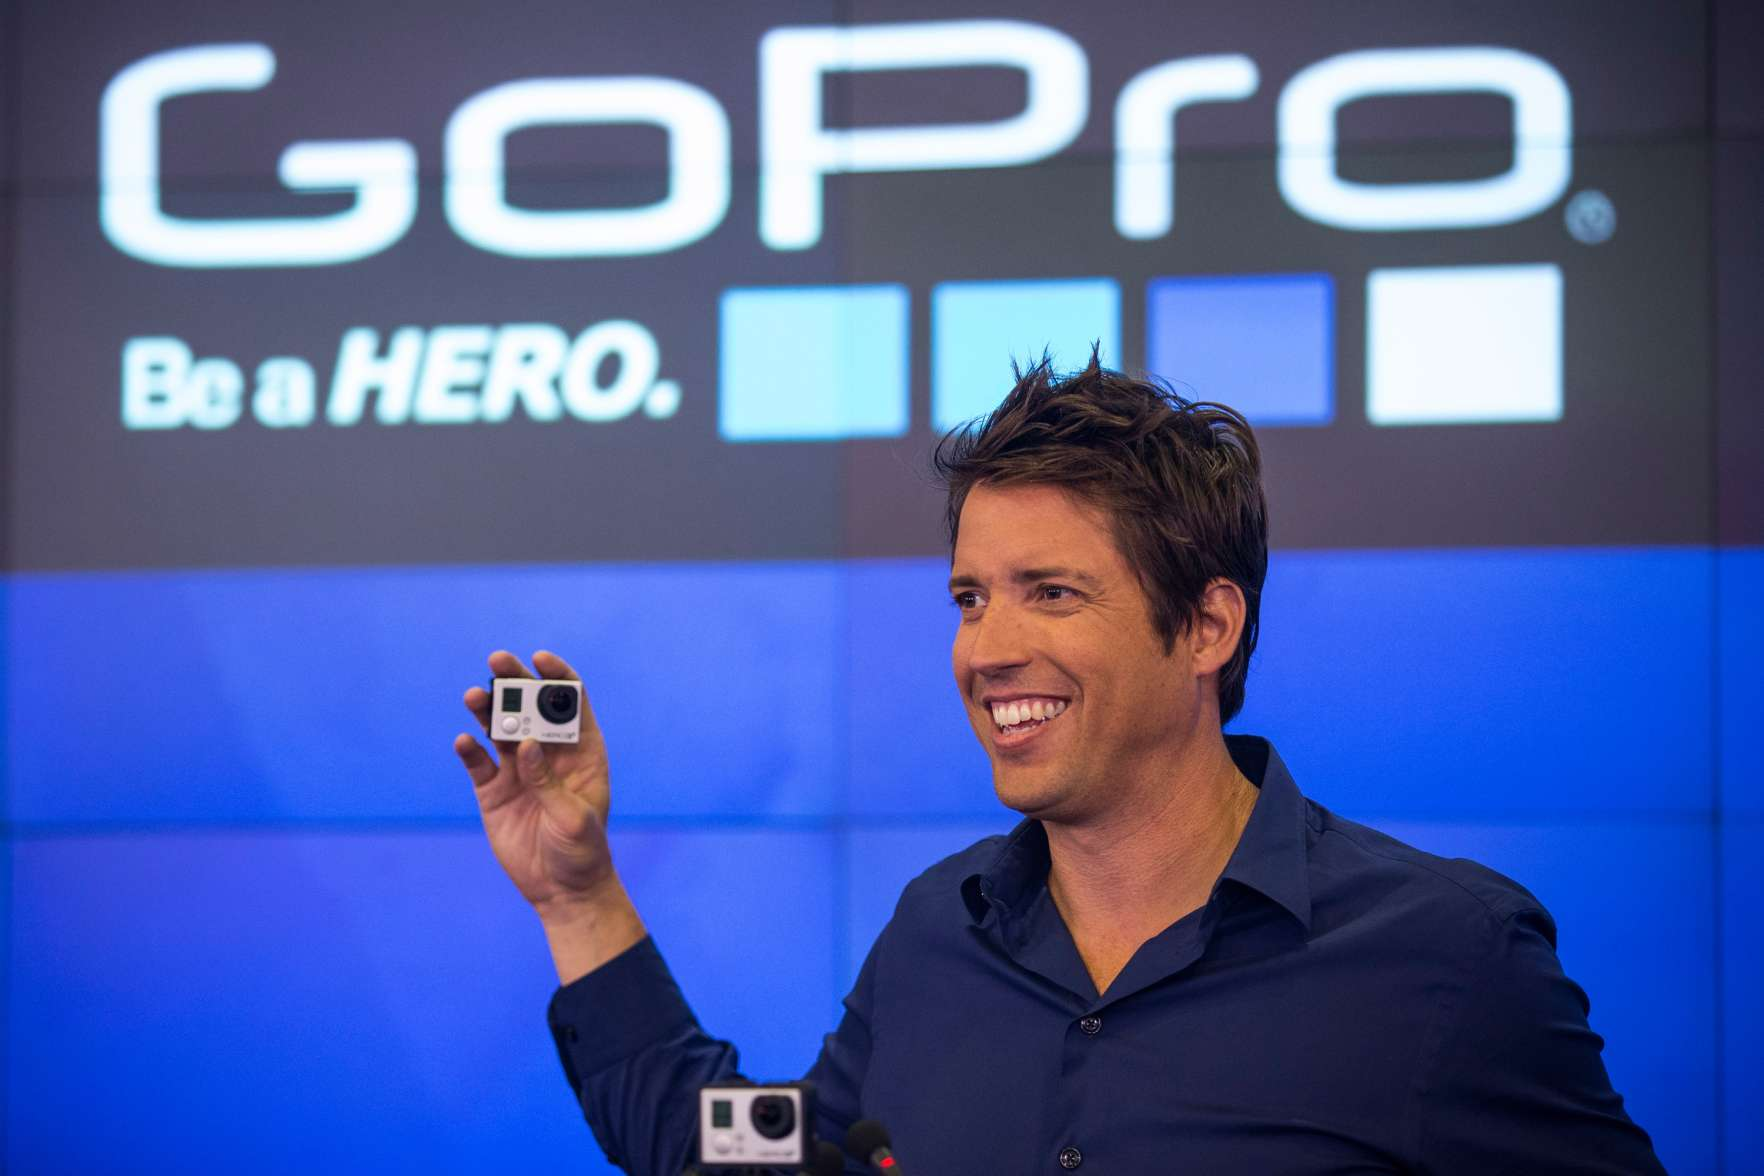 Nick Woodman, founder and CEO of GoPro speaks during the company's initial public offering (IPO) at the Nasdaq Stock Exchange on June 26, 2014.